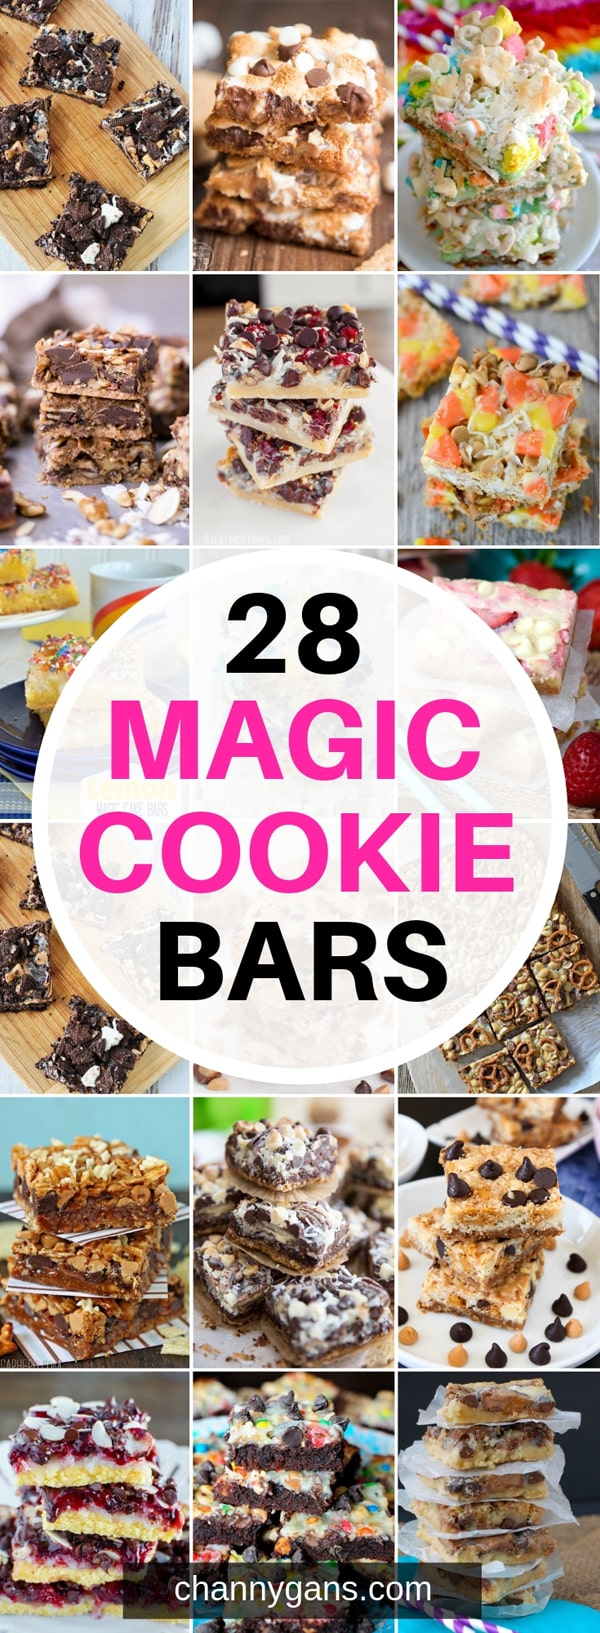 If you haven't tried magic cookie bars yet, you are missing out. If you want to make a delicious dessert, here are 28 magical magic cookie bars you can choose from.